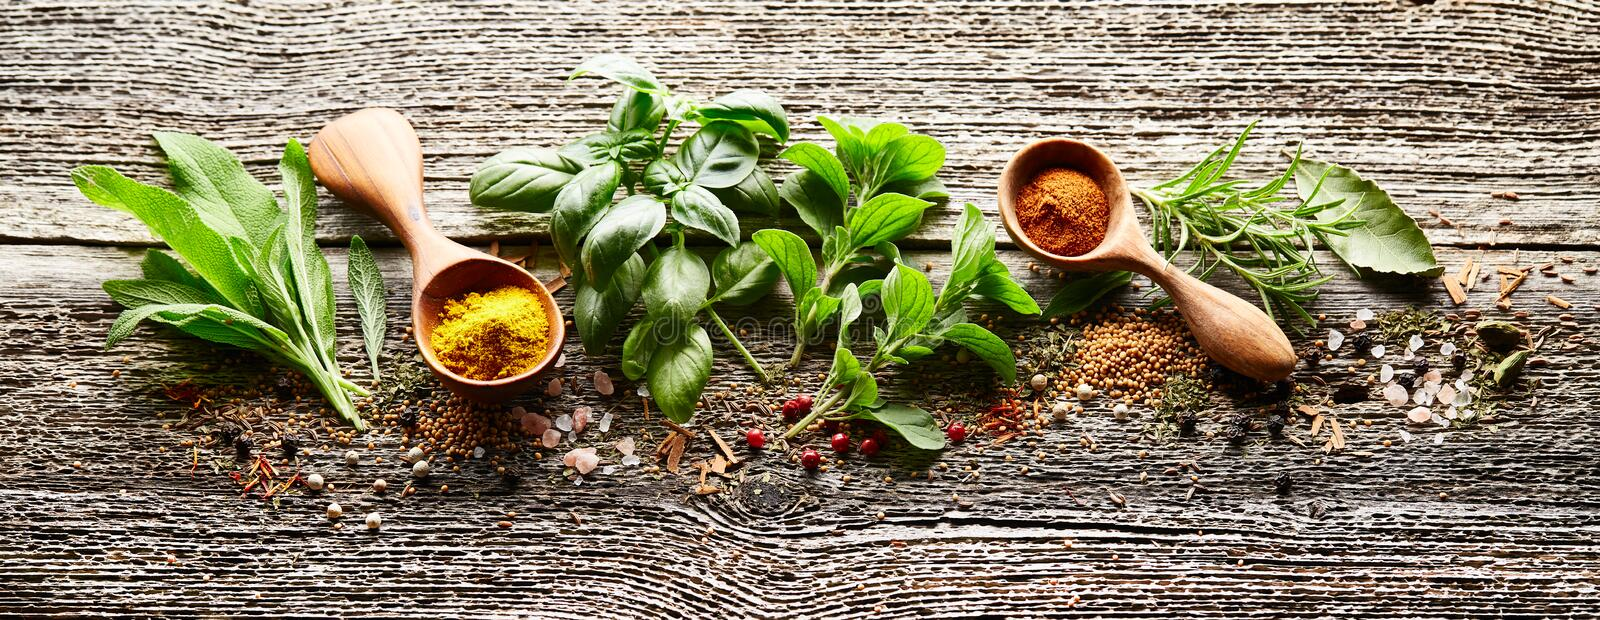 Herbs and spices on wooden board royalty free stock images